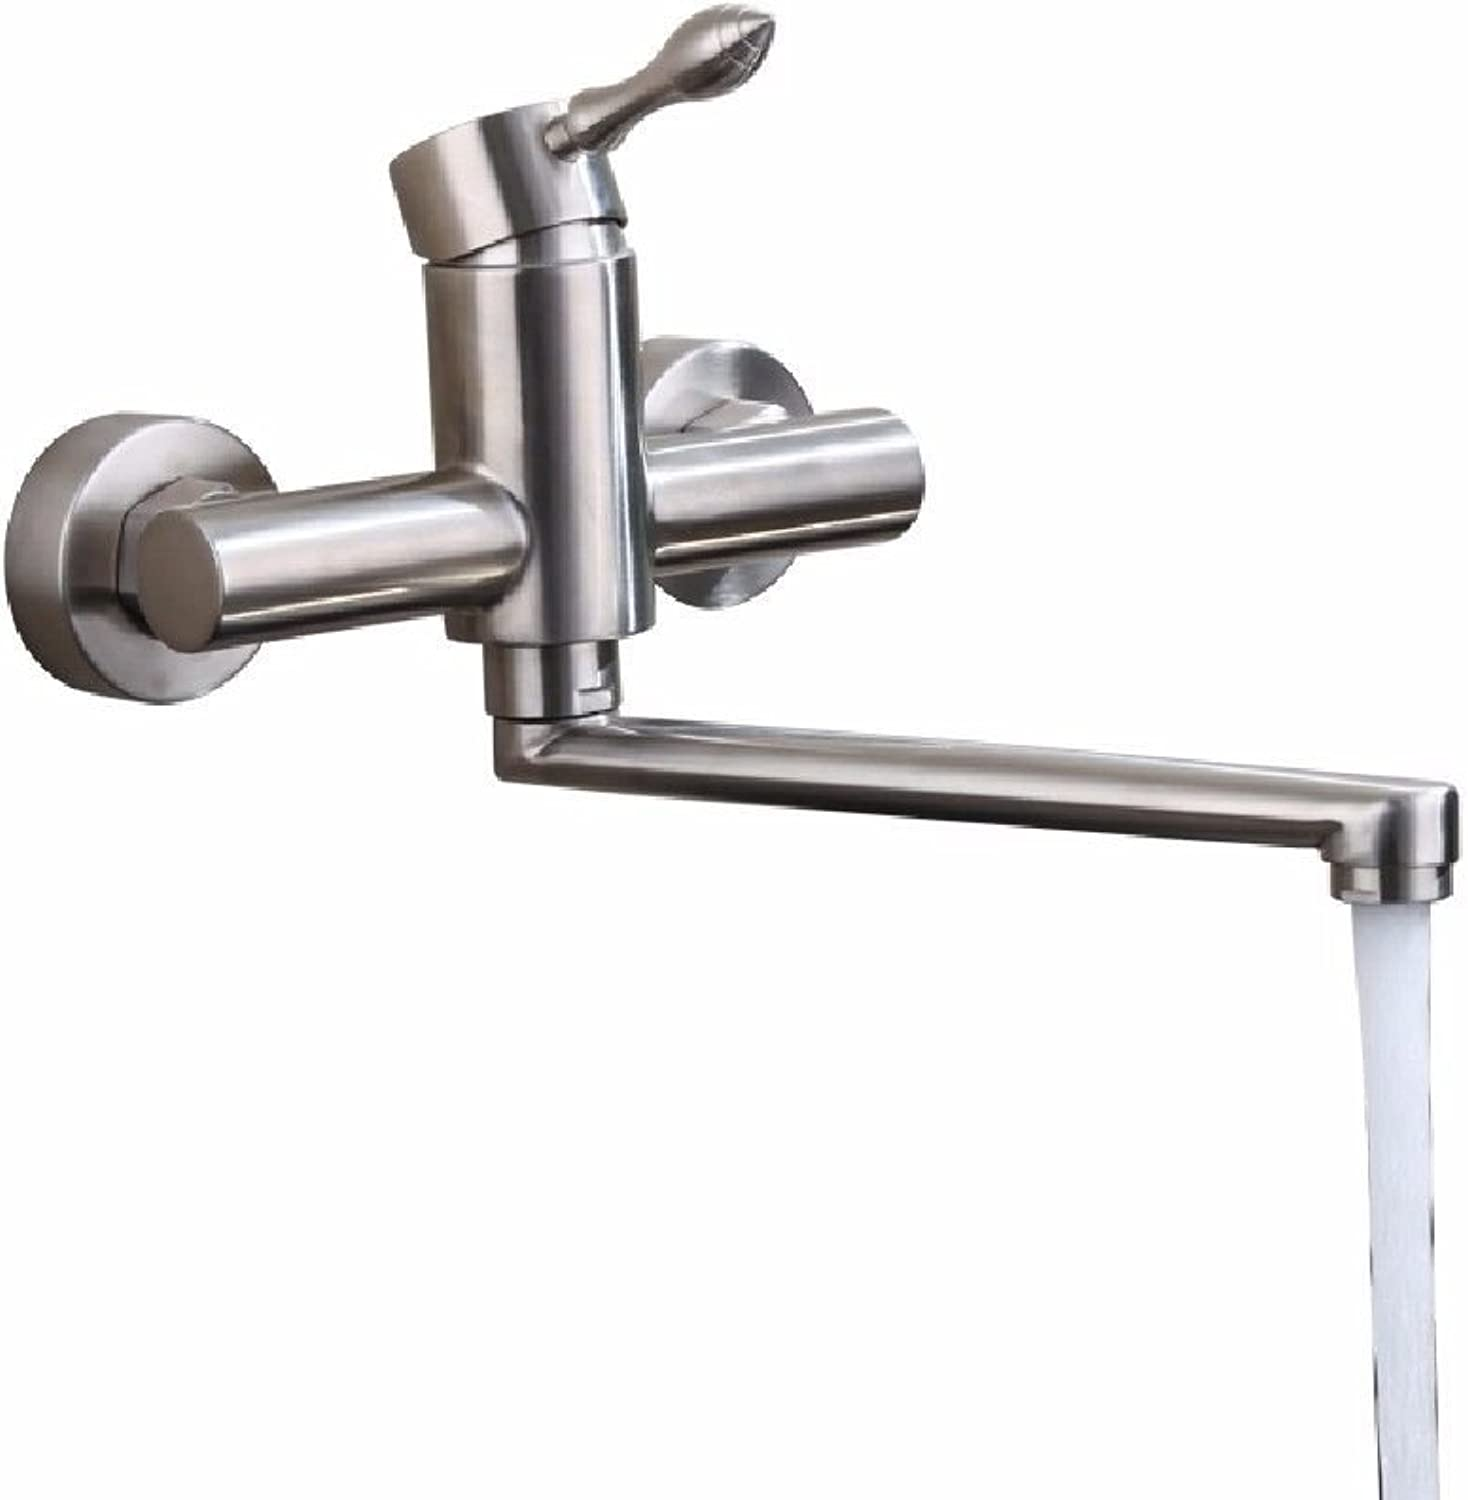 Commercial Single Lever Pull Down Kitchen Sink Faucet Brass Constructed Polished in-Wall 304 Stainless Steel Kitchen Faucet???Double Sink redating Faucet